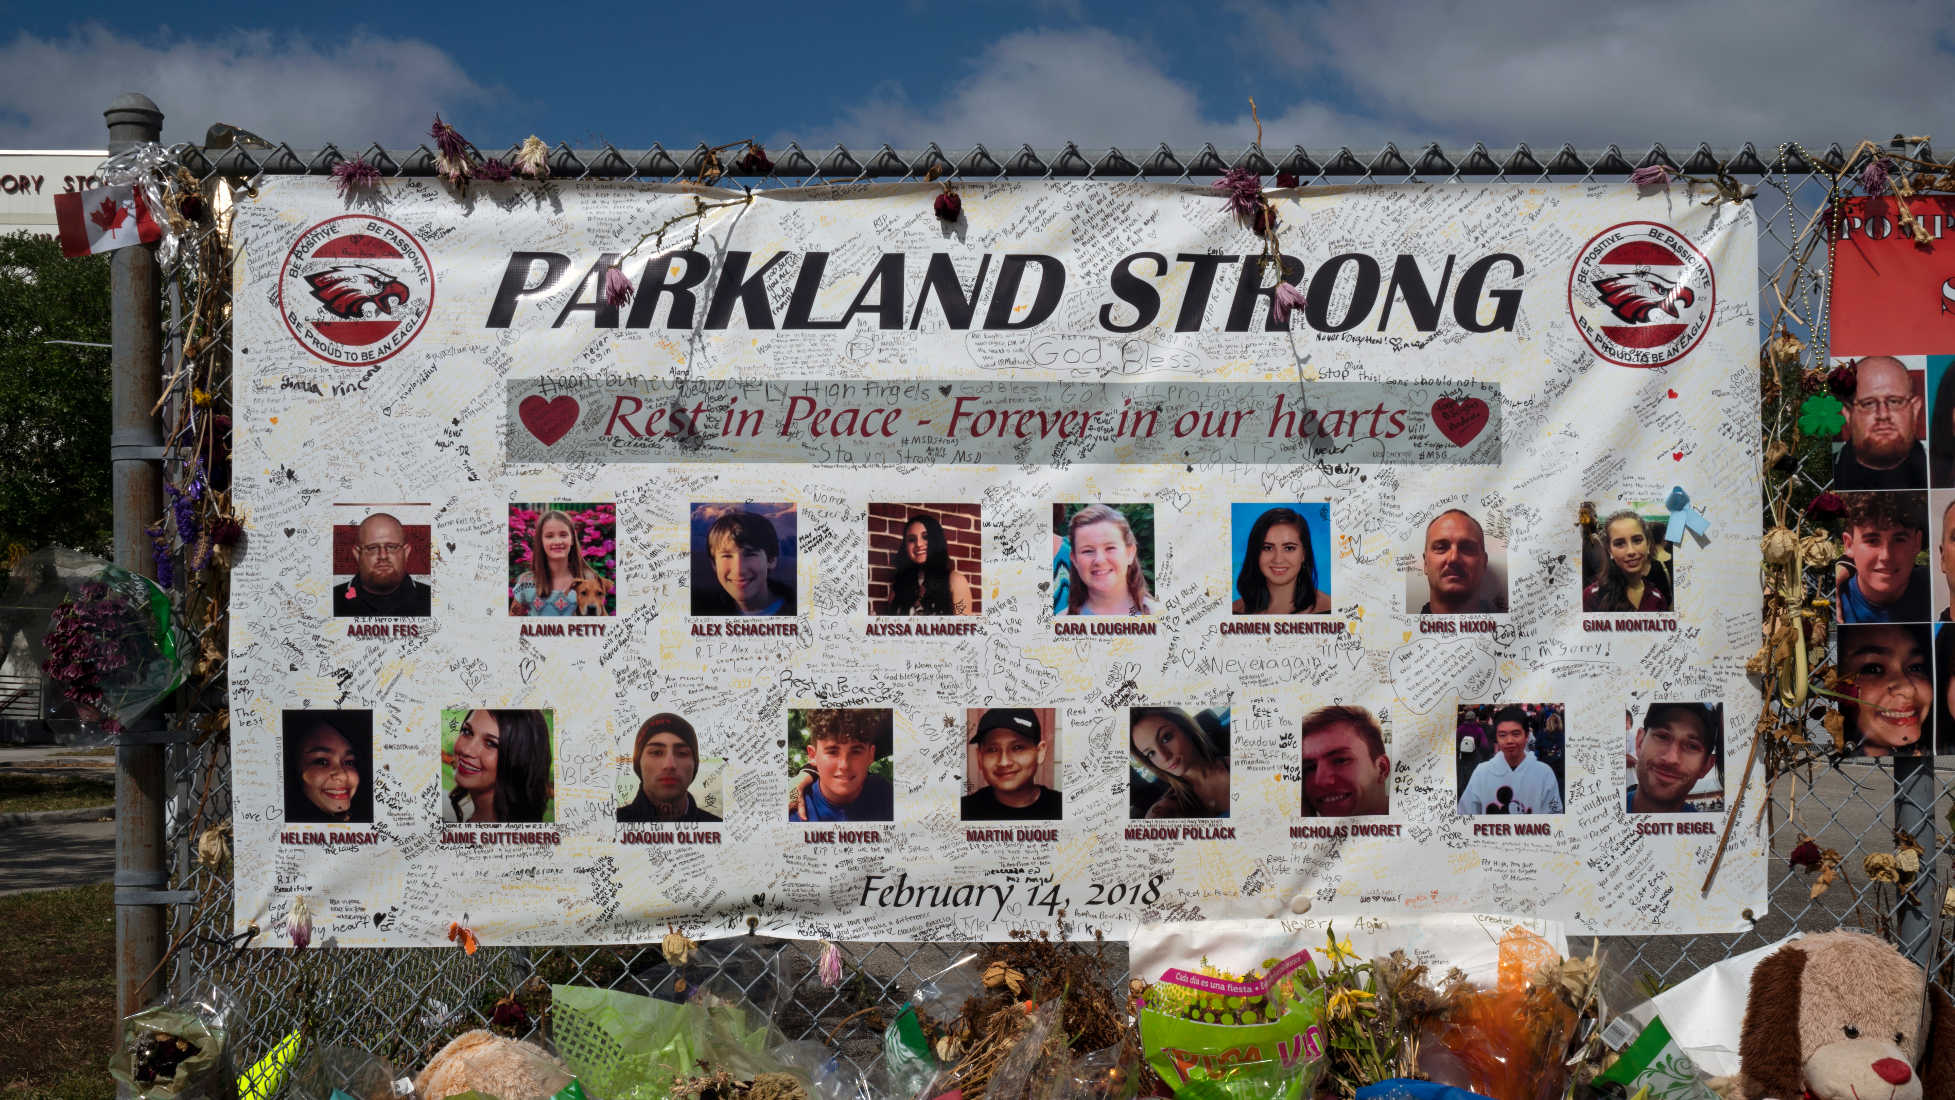 Father of Student Killed in Parkland Shooting Files Lawsuit Against 'Coward of Broward' School Resource Officer